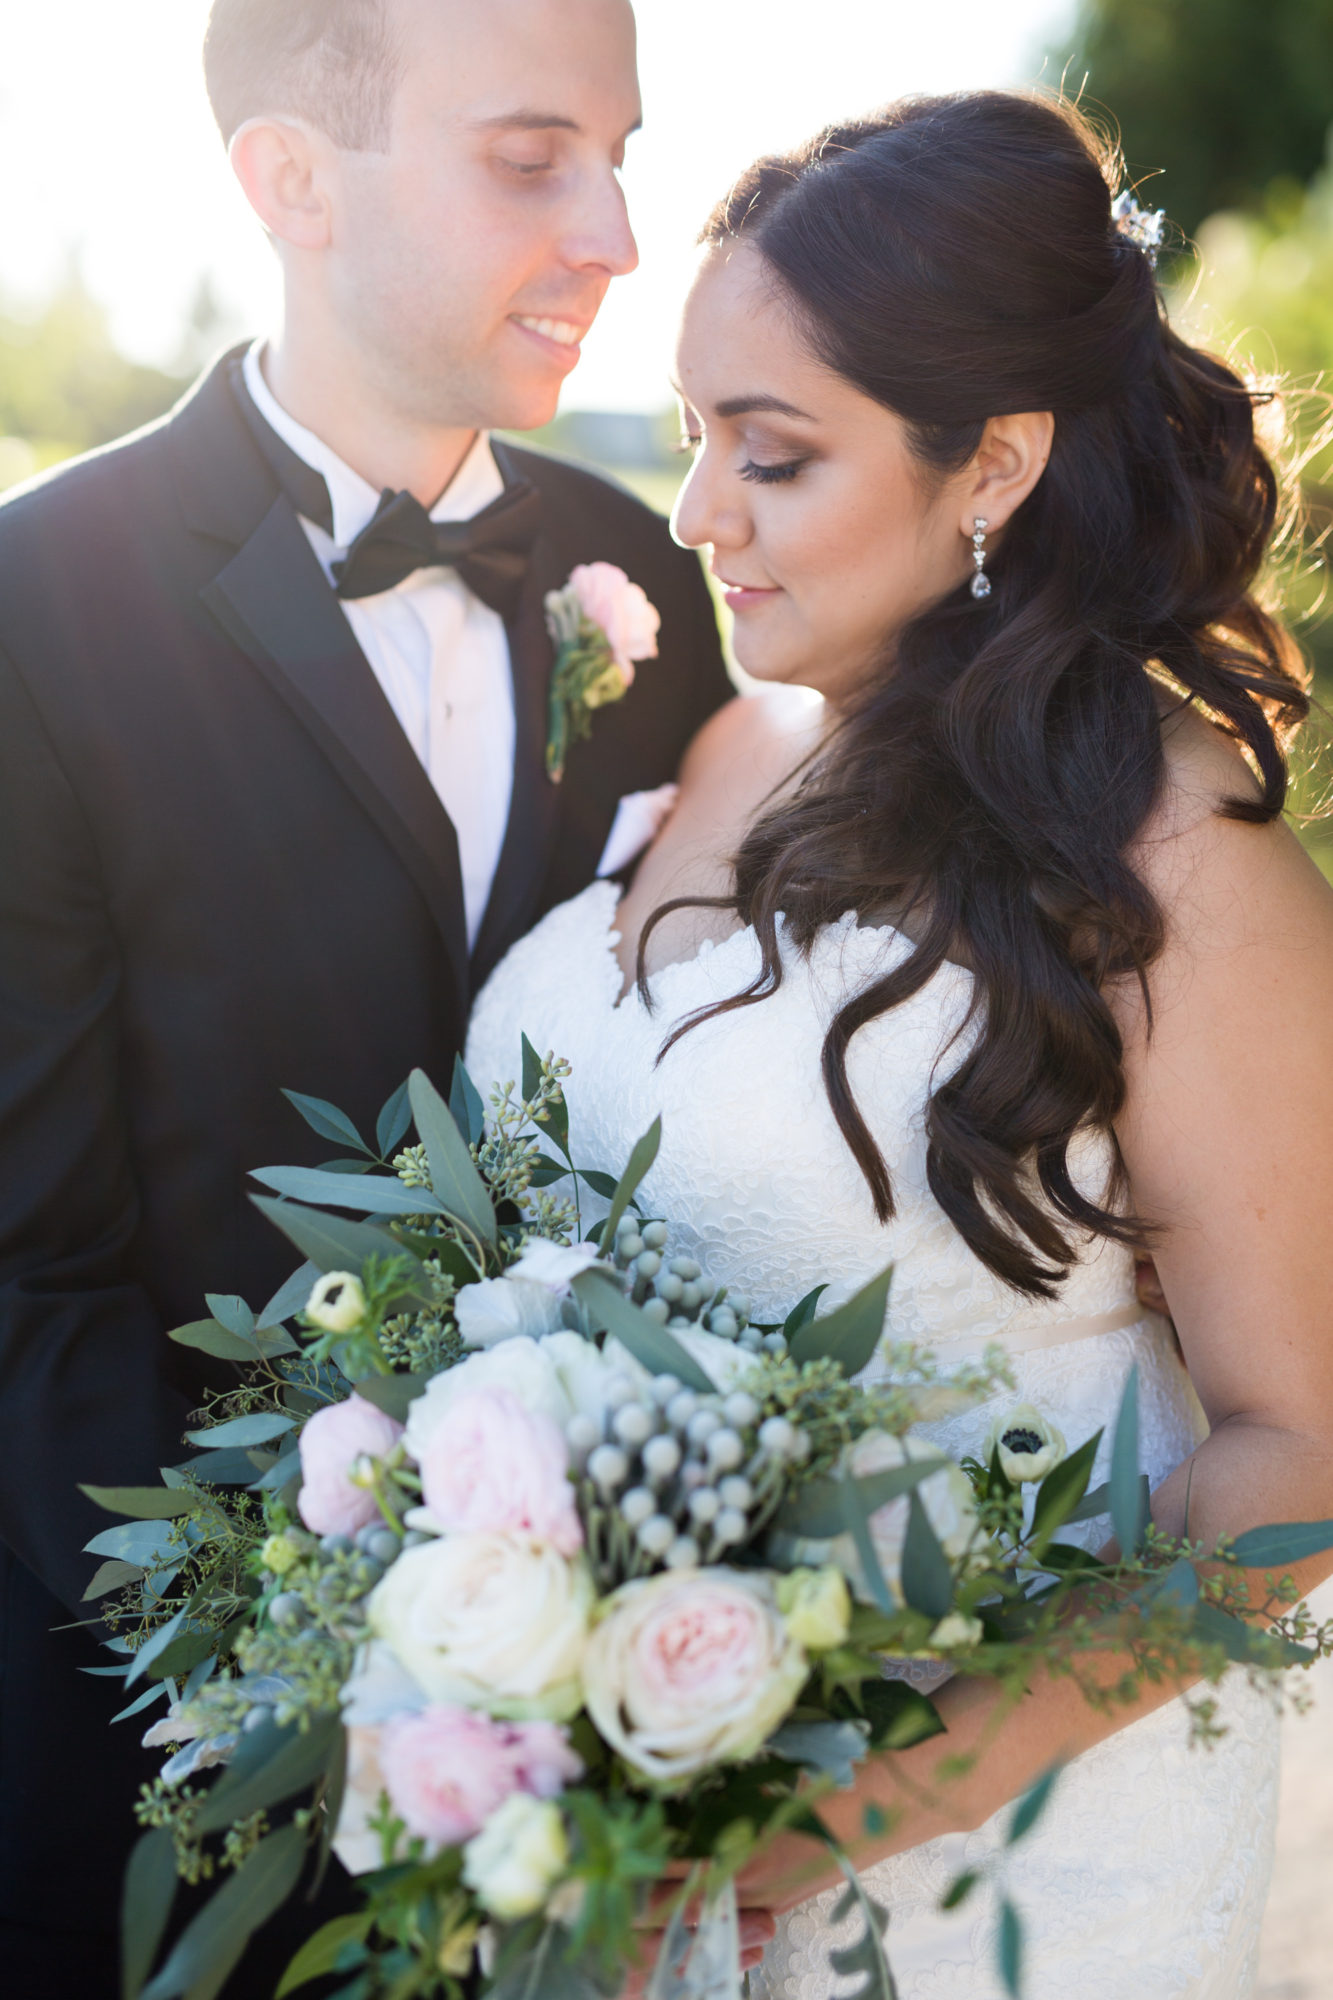 Deer Creek Golf Club Couple Bouquet Toronto Wedding Zsuzsi Pal Photography